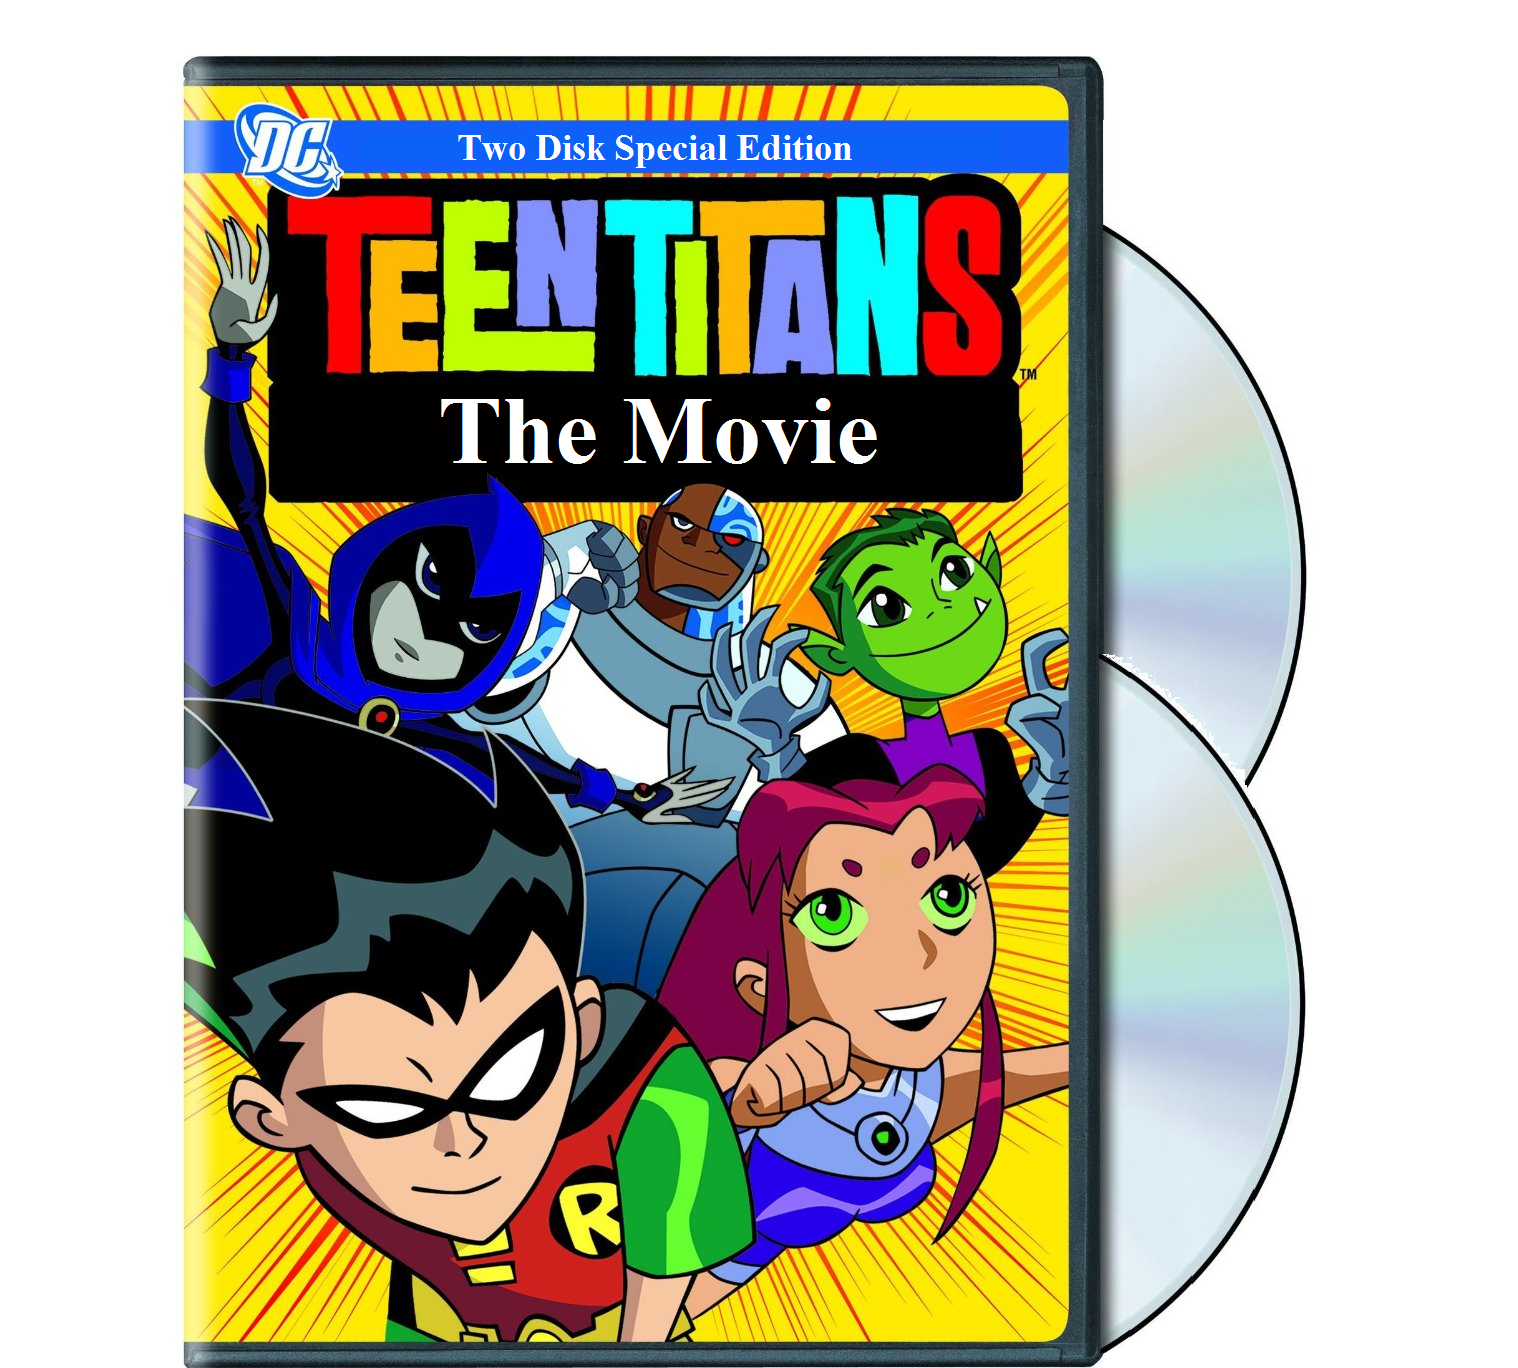 Consider, that The teen titans movie not